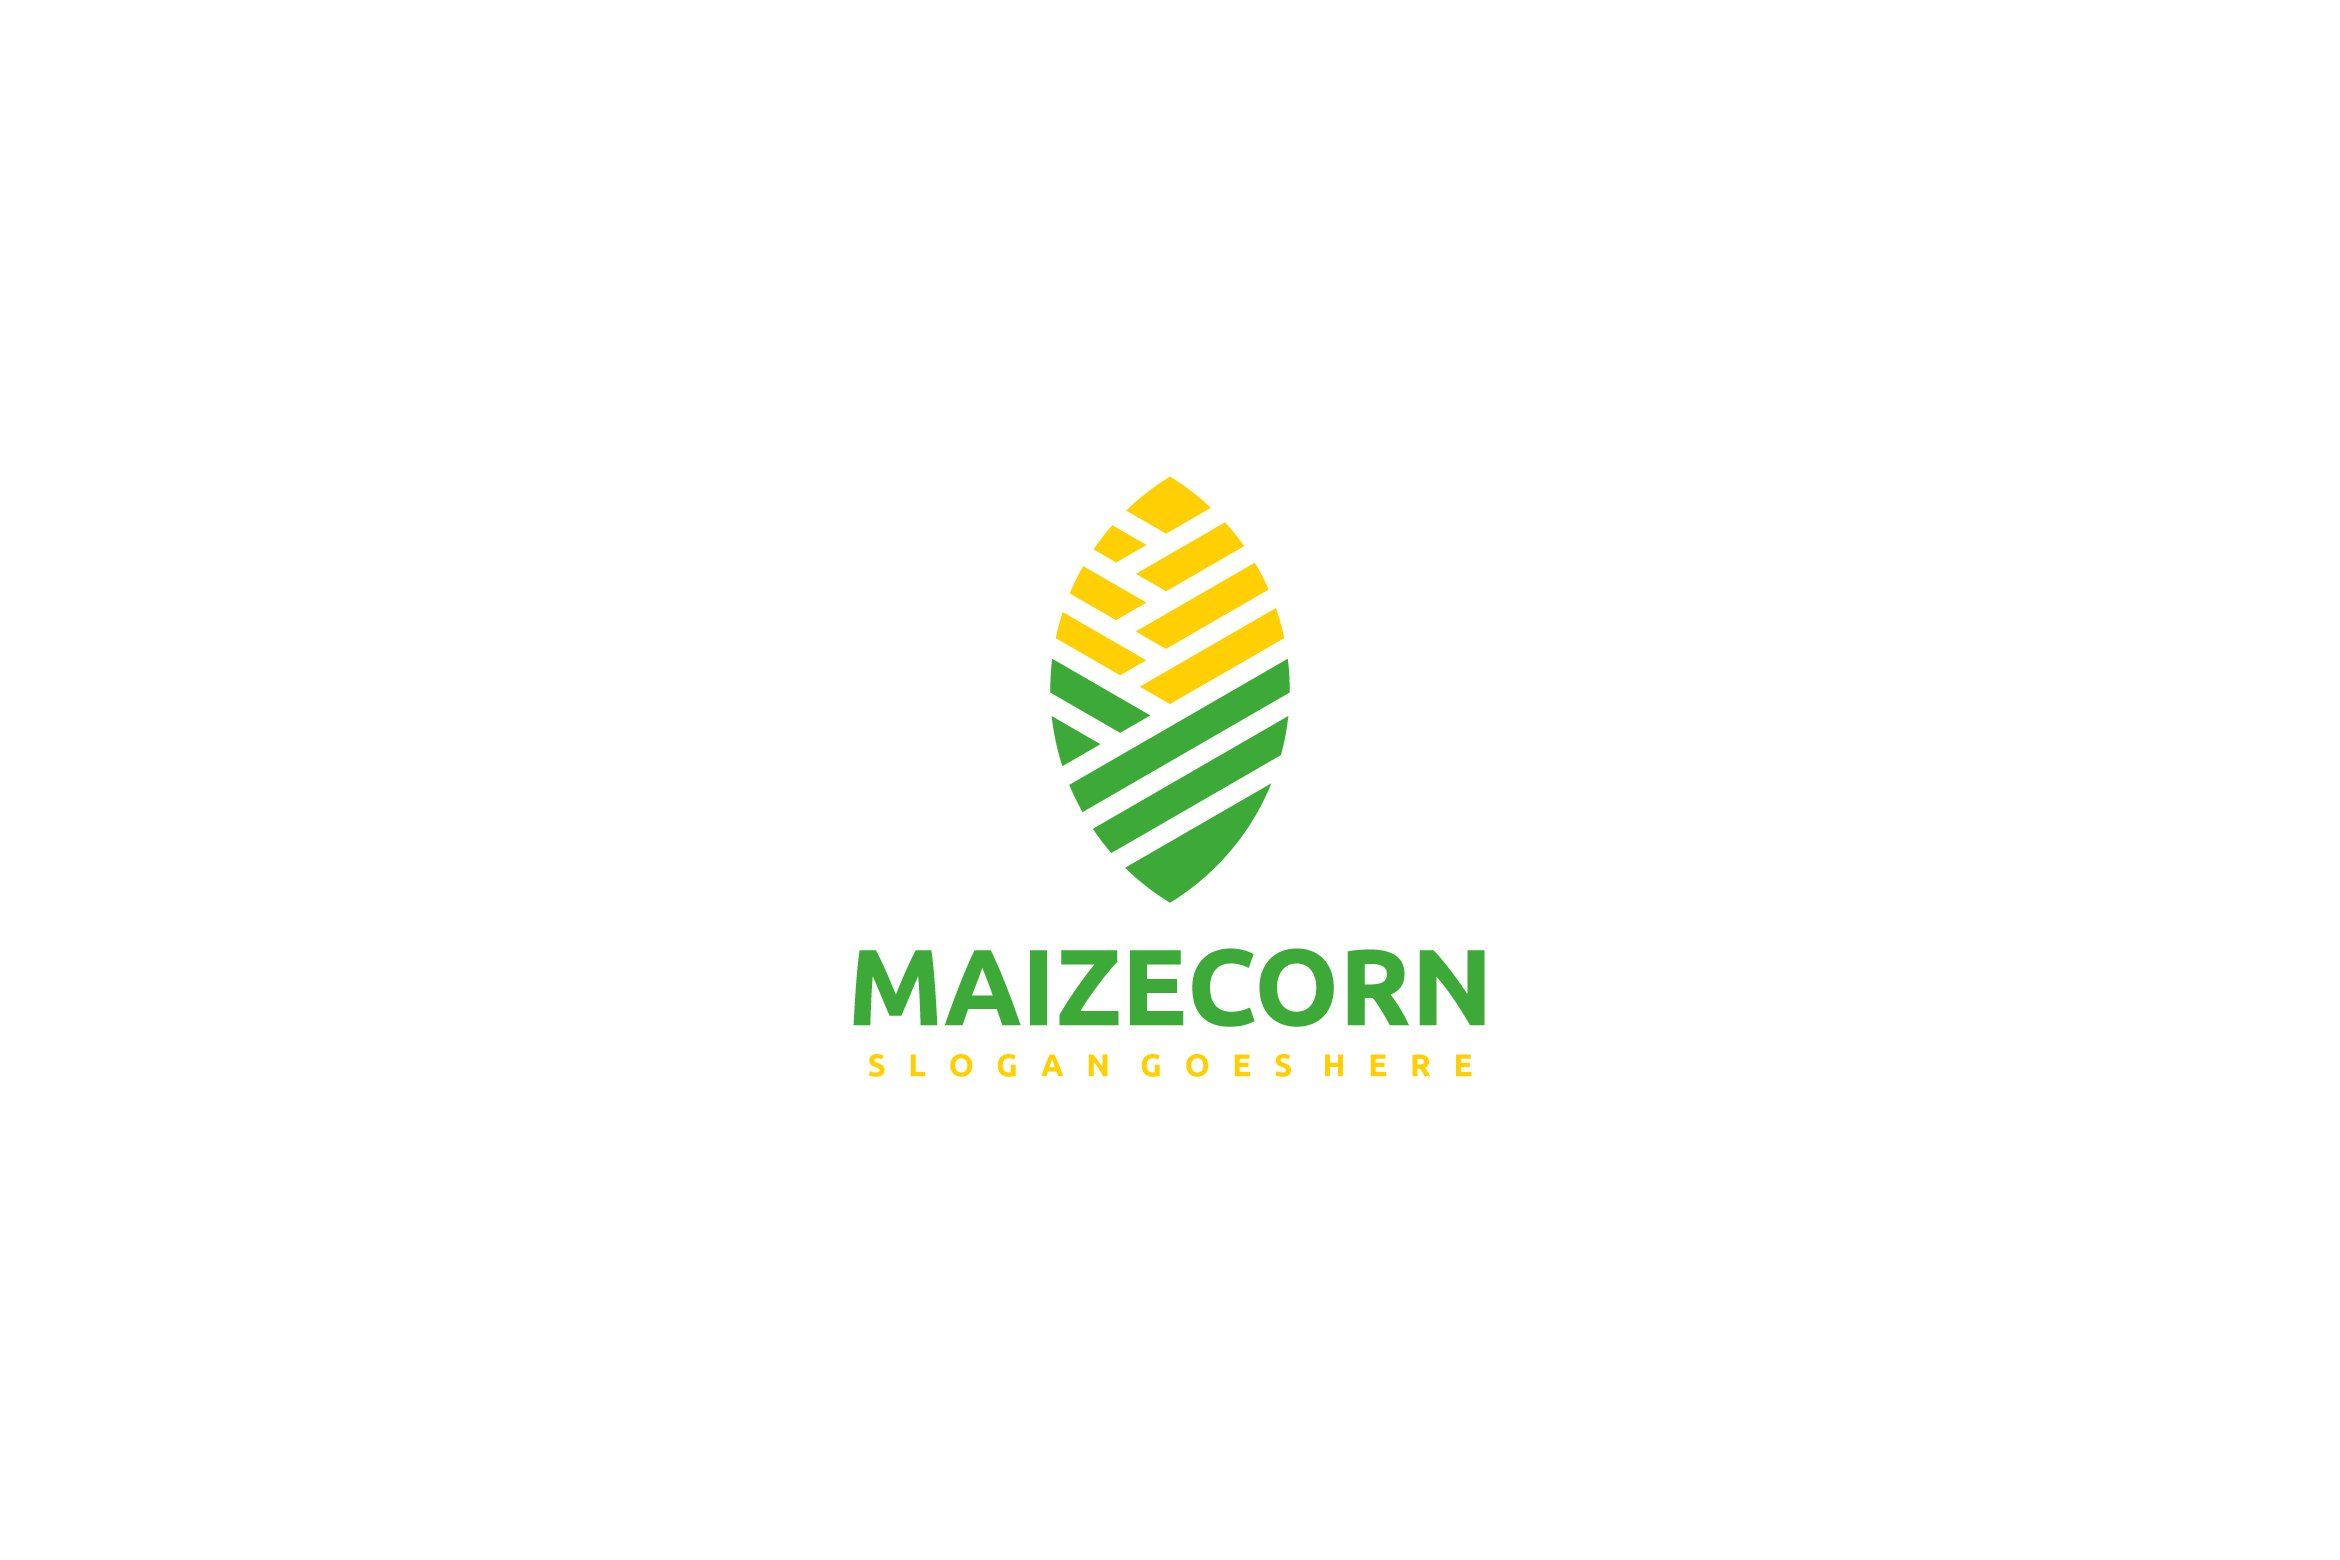 maize corn logo logo design typography logo design template personal logo design maize corn logo logo design